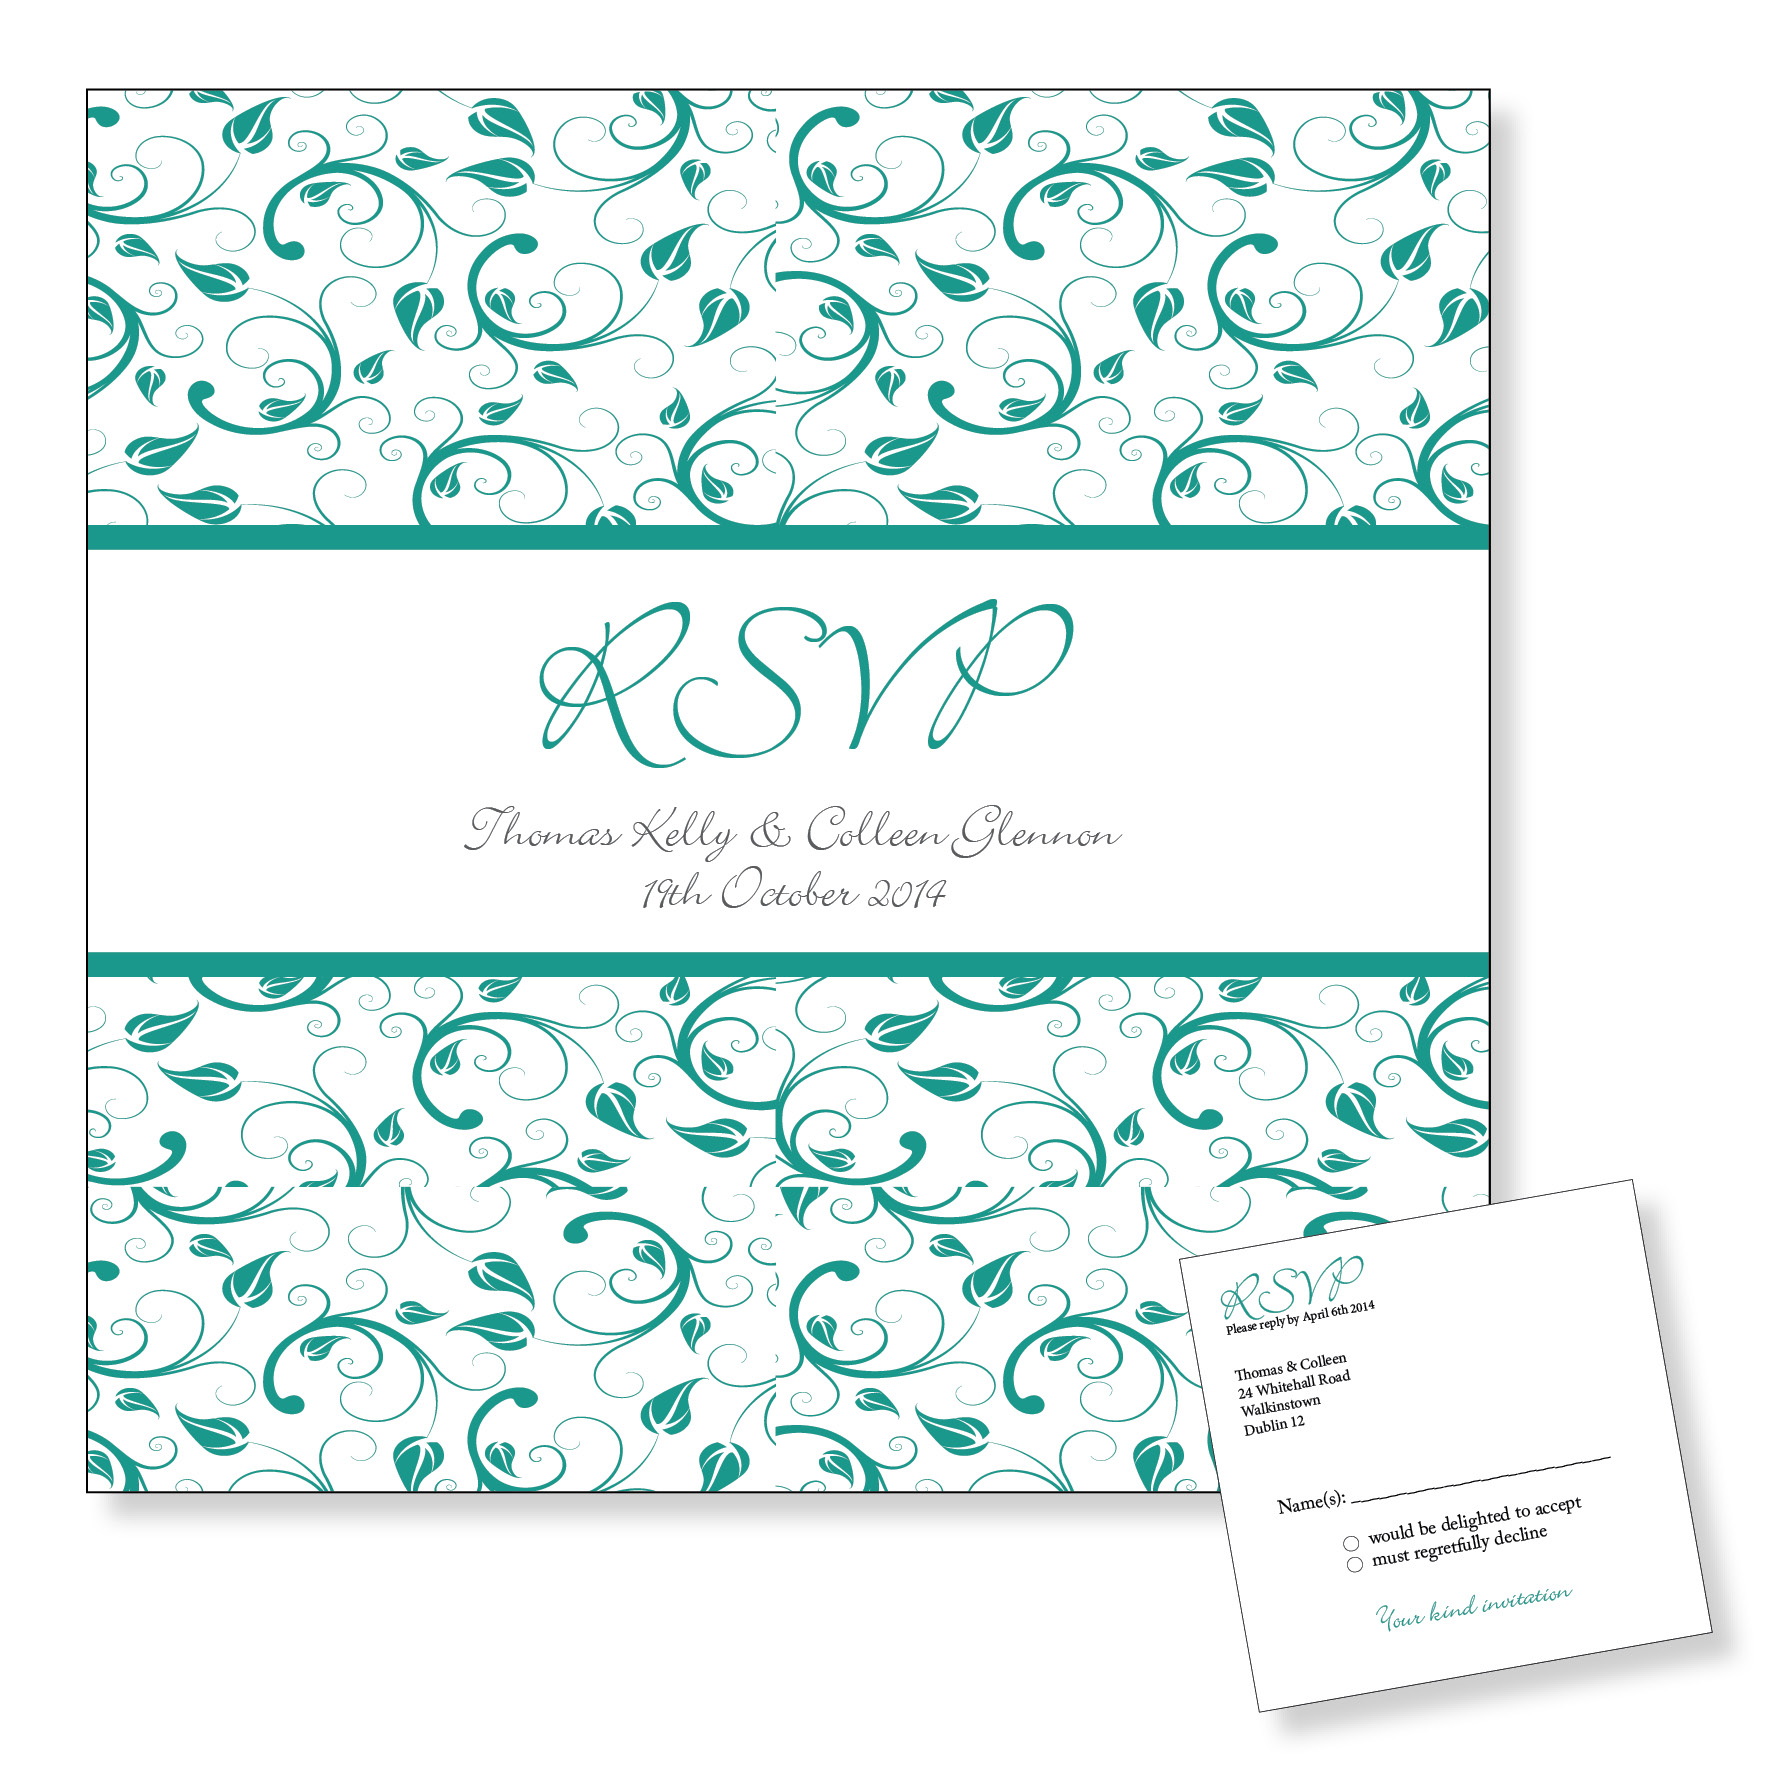 wedding rsvp  reply cards  dublin  ireland  turquoise floral design